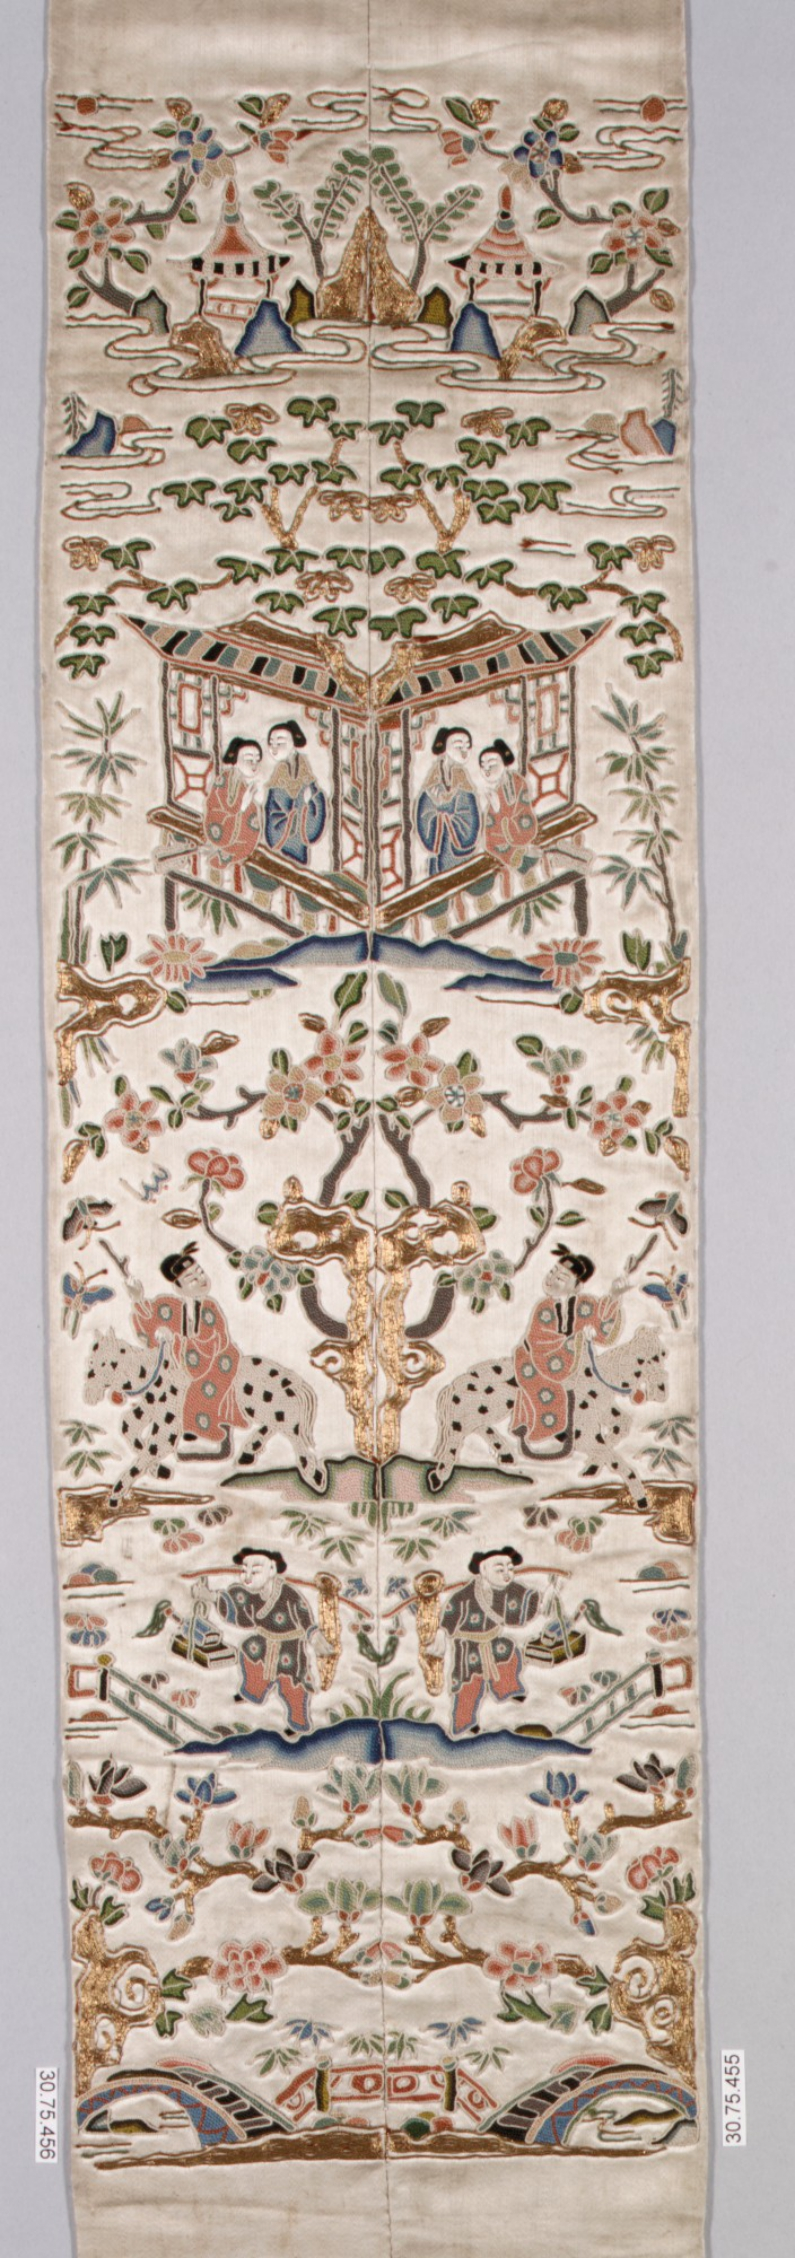 Metropolitan_Museum_sleeve_band_embroidery_Paul_bequest